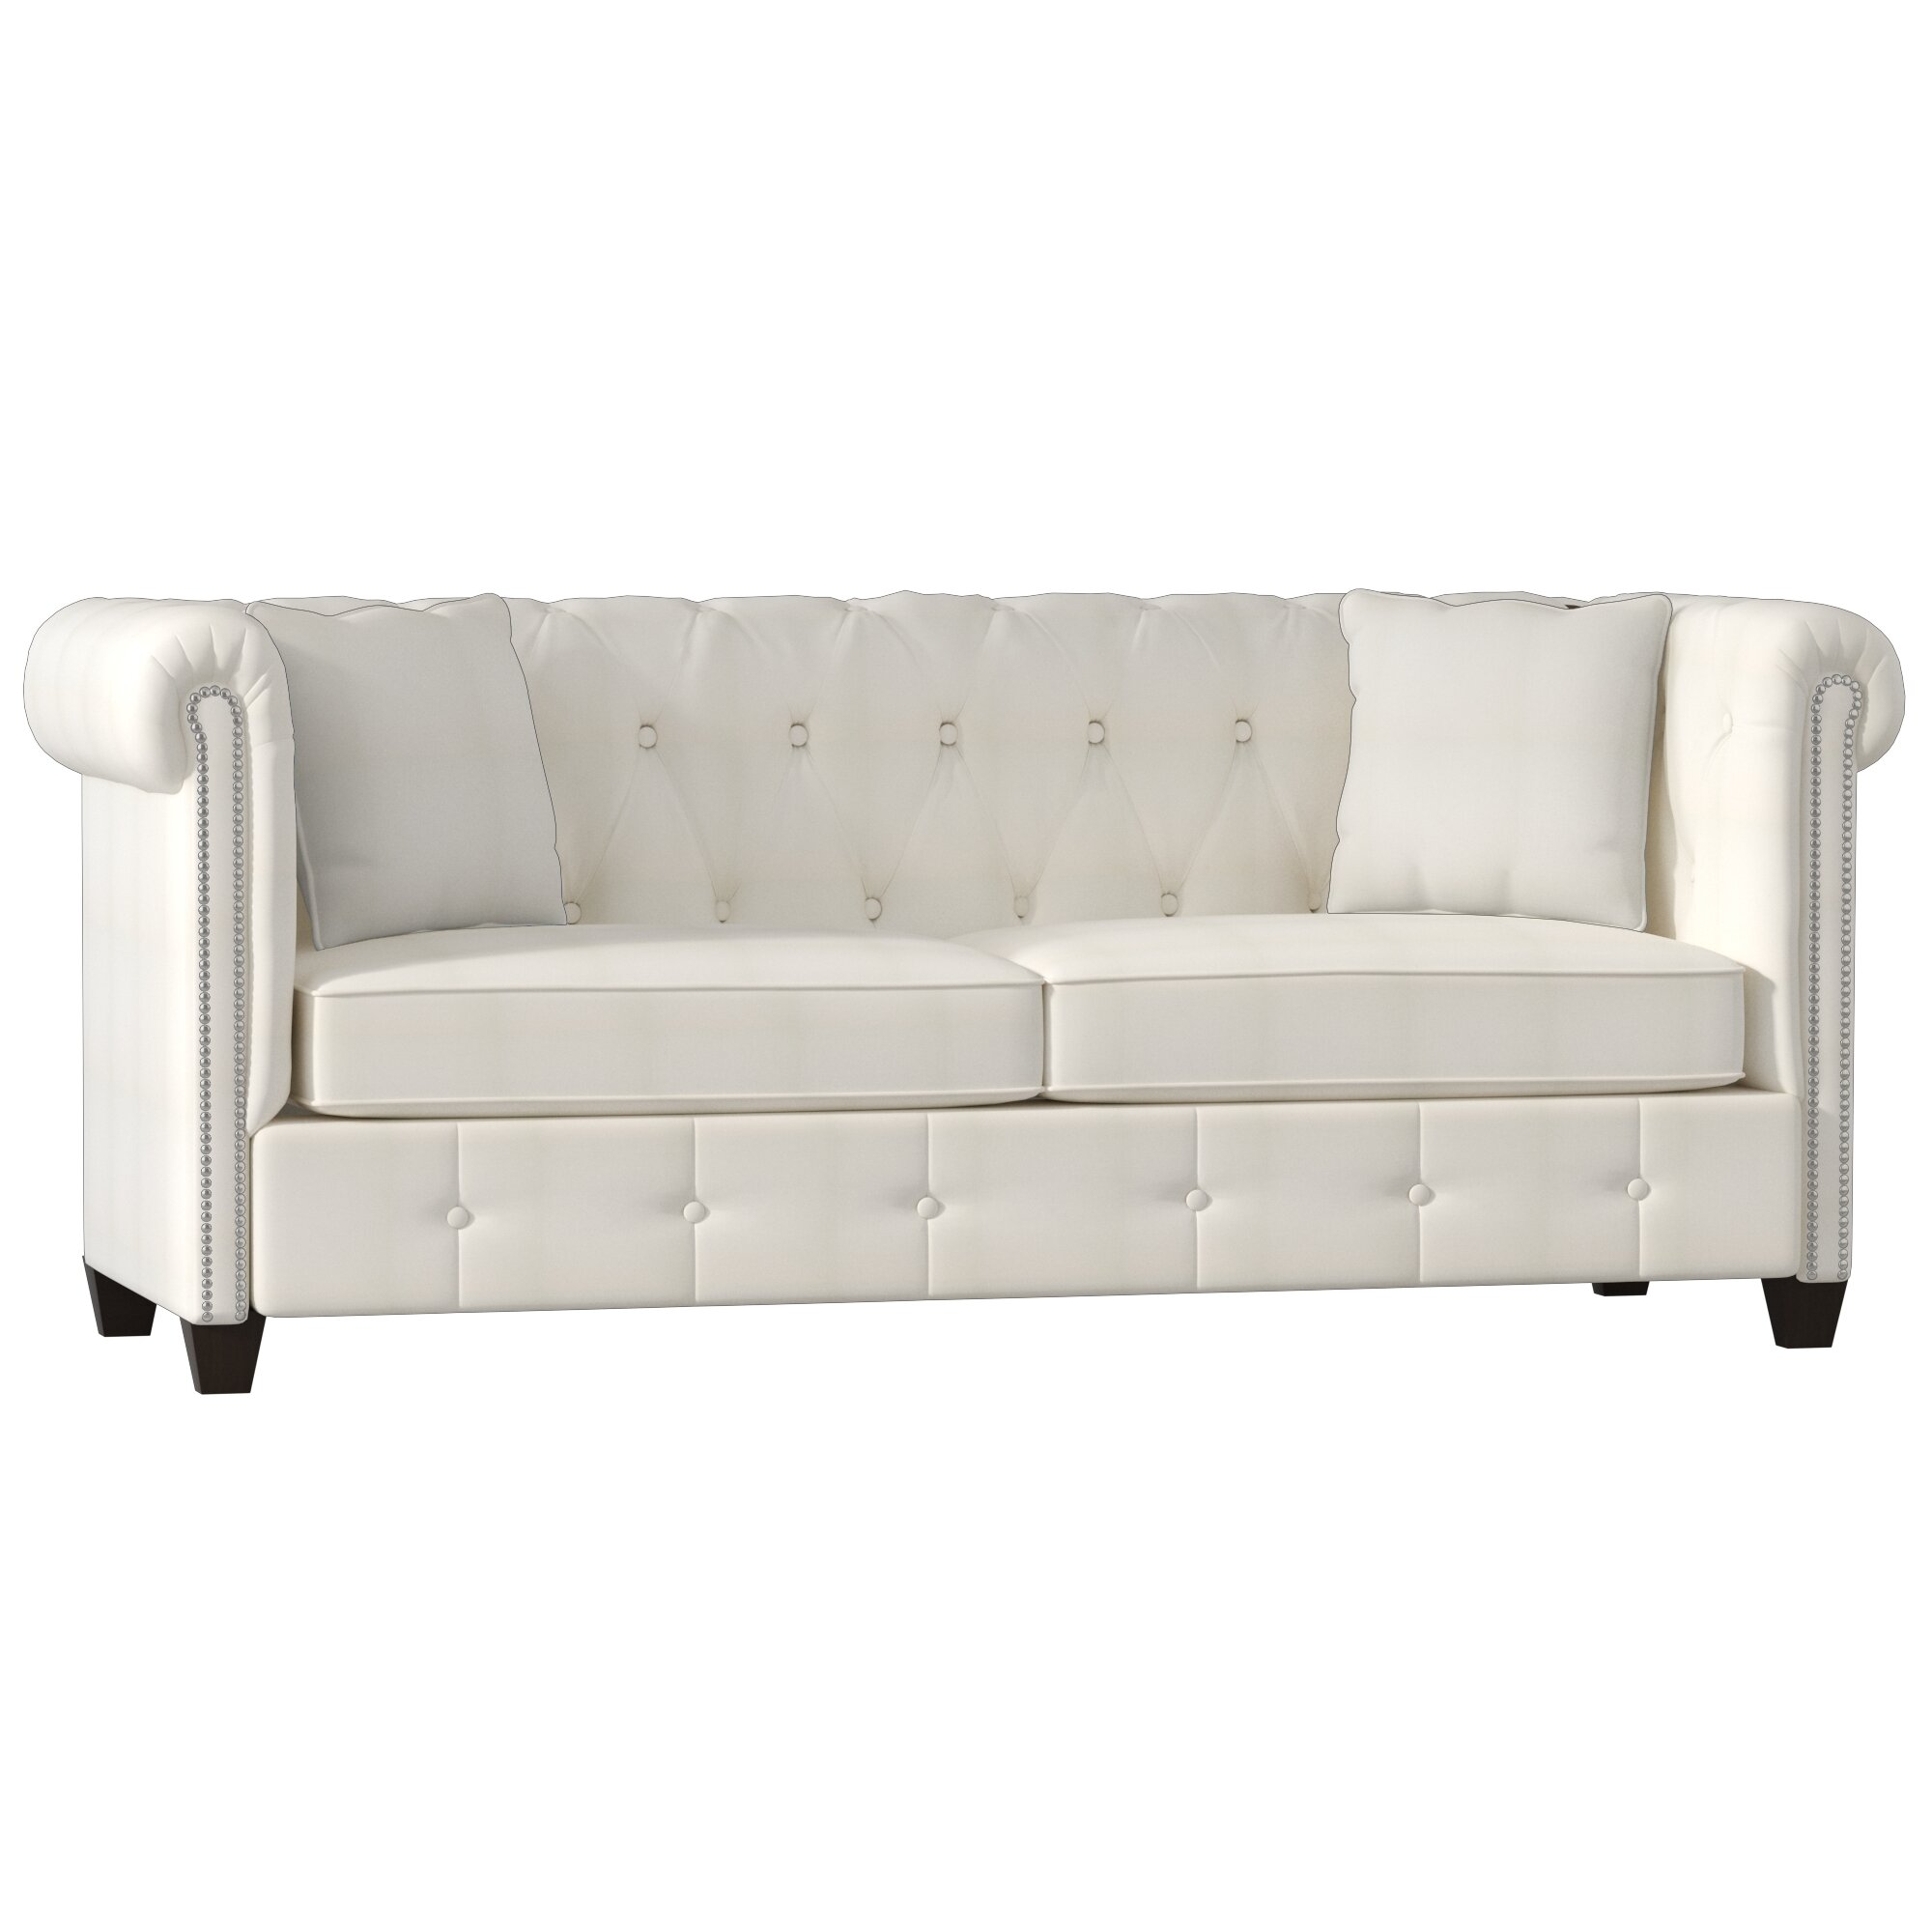 Wayfair Custom Upholstery Josephine Tufted Chesterfield Sofa Reviews